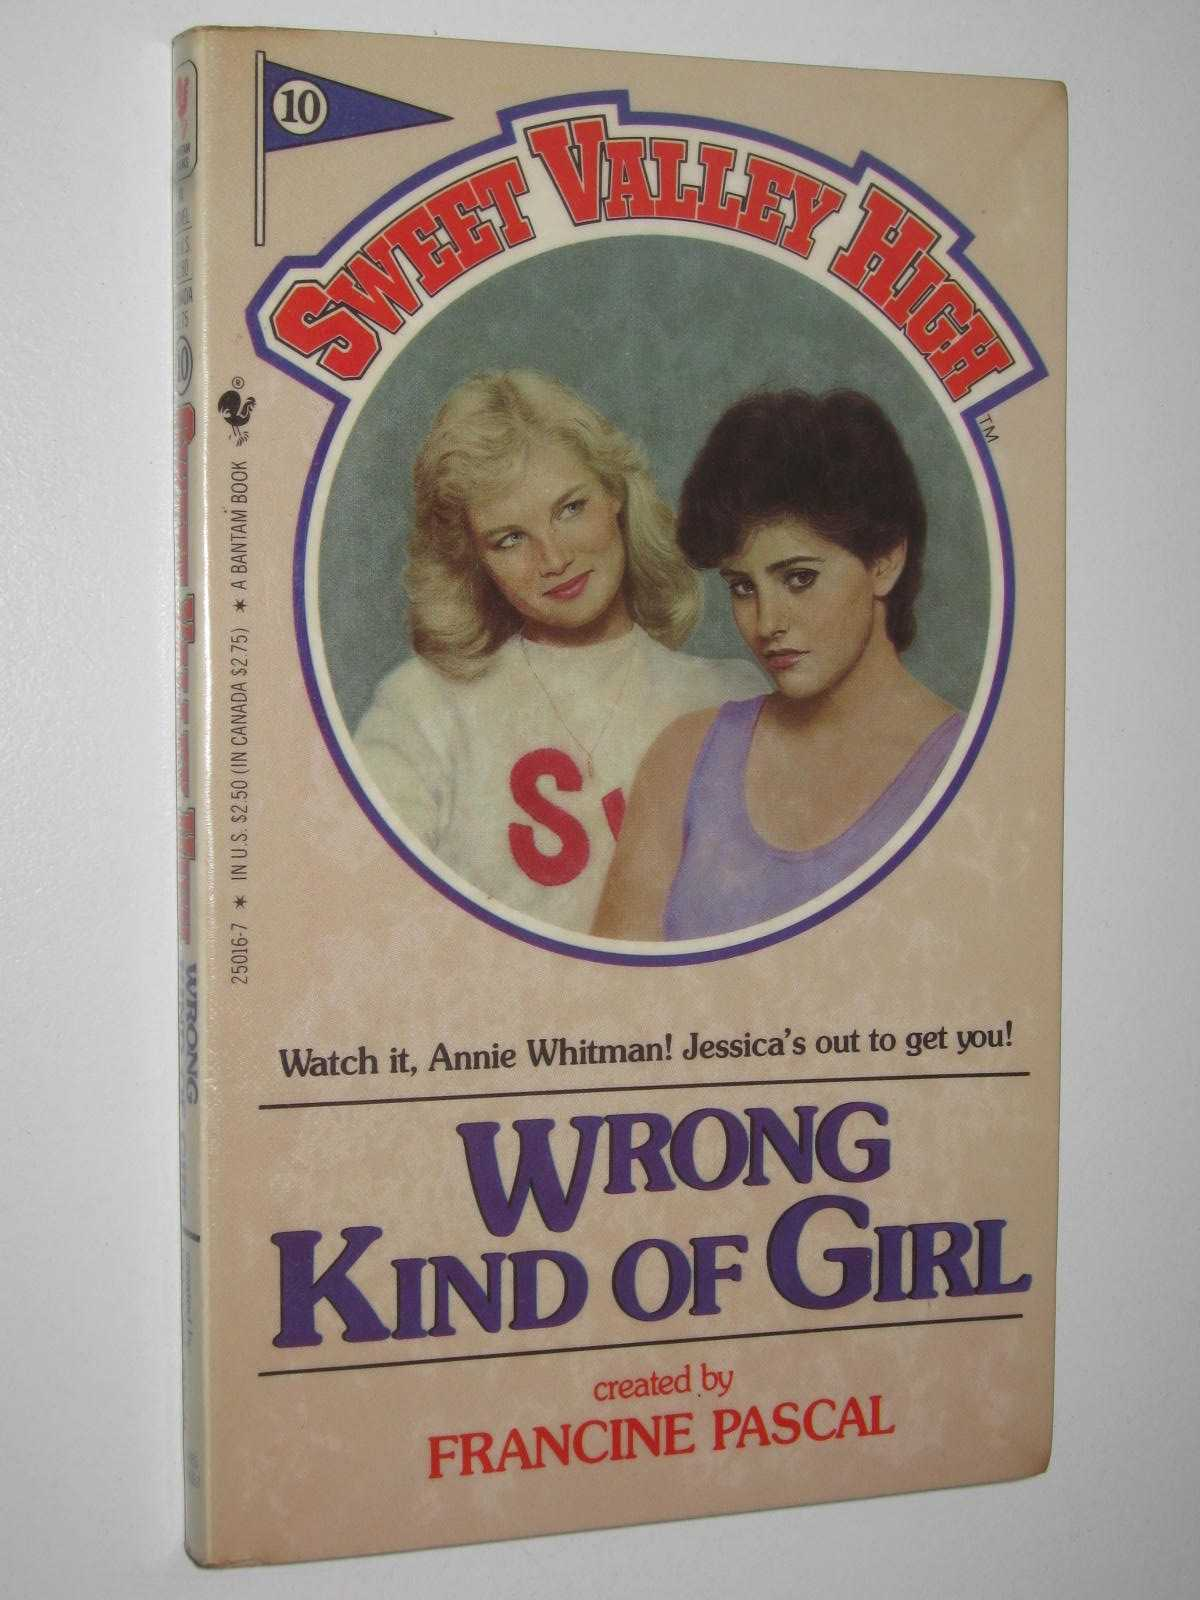 Image for Wrong Kind of Girl - Sweet Valley High Series #10